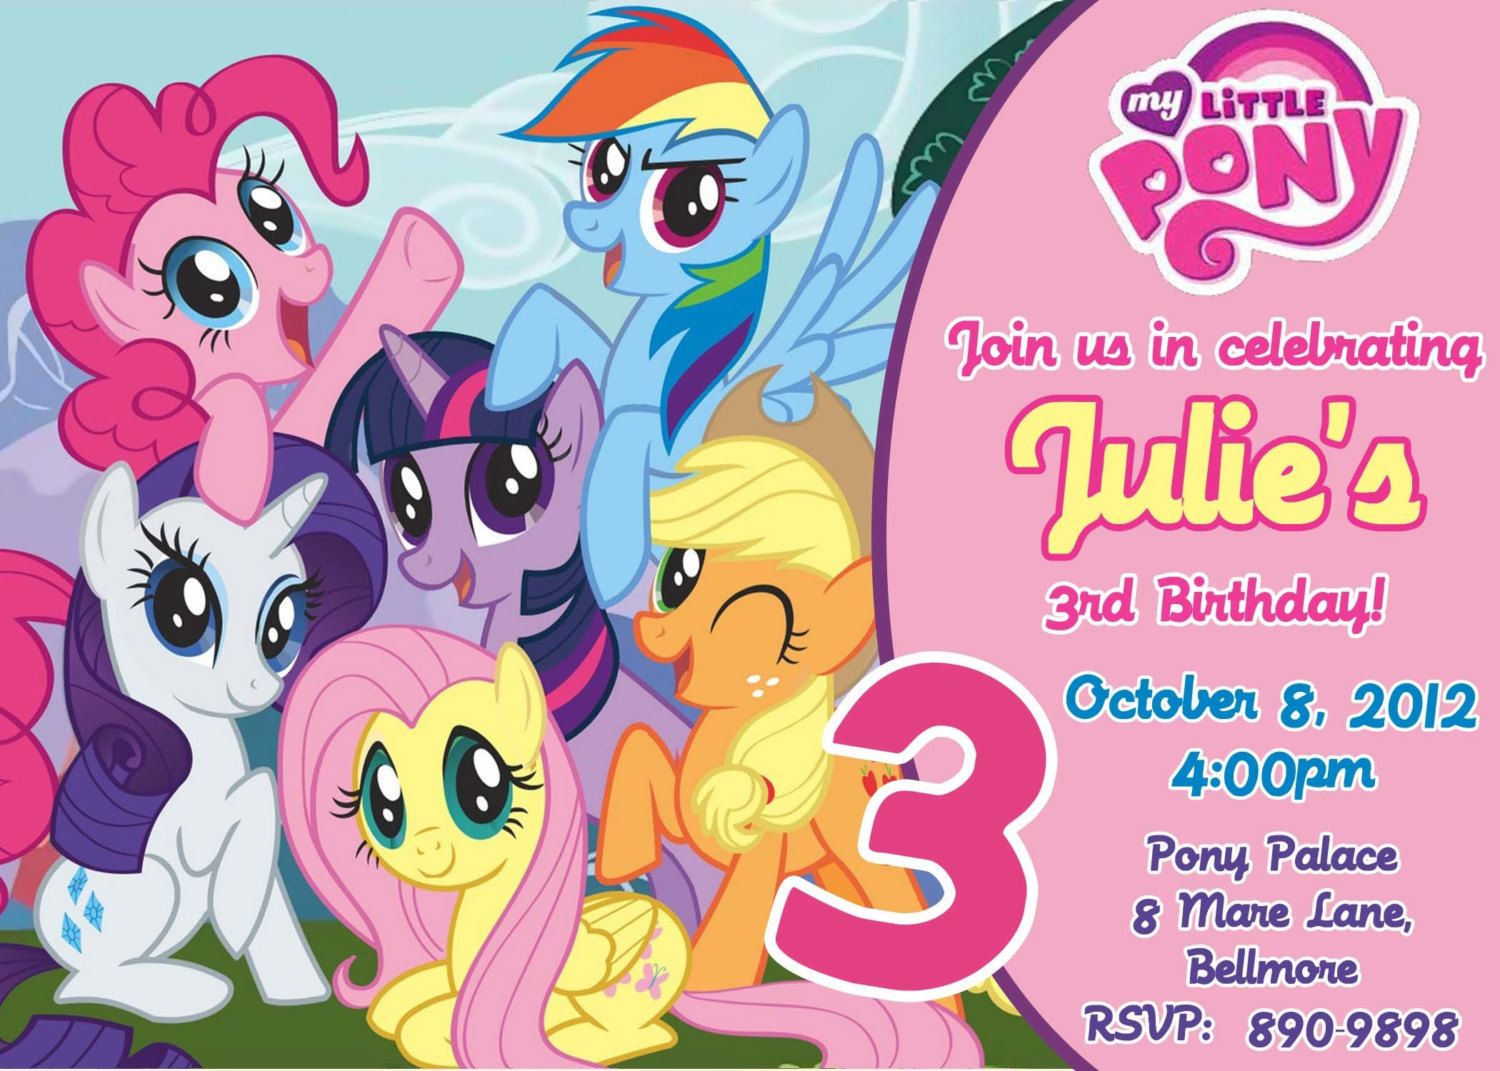 My little pony birthday invitation parties pinterest pony my little pony birthday invitation filmwisefo Image collections